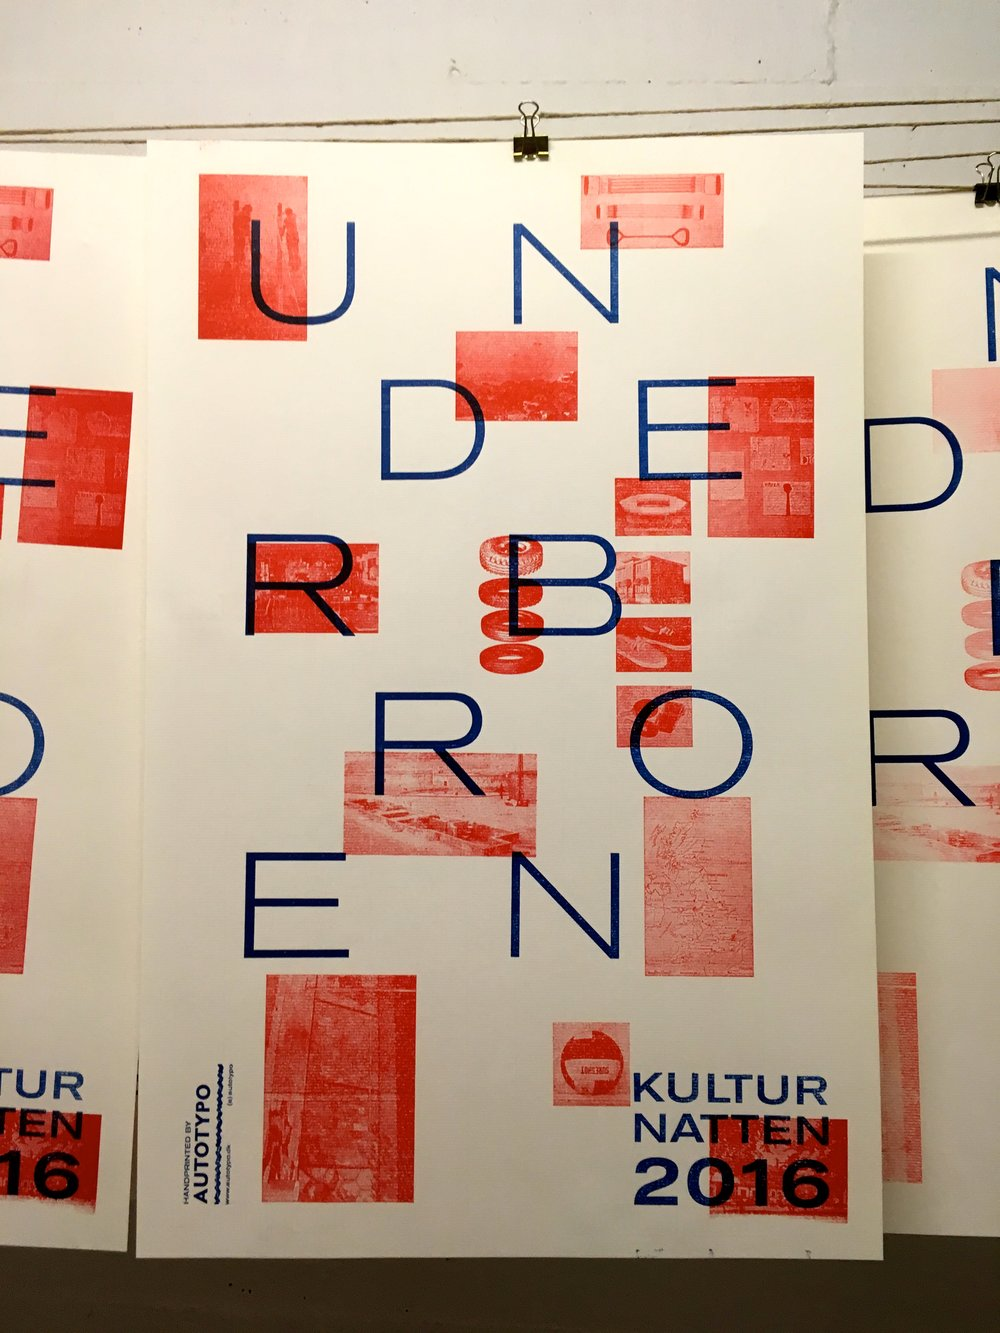 letterpress poster (limited edition)  Designed and made by Kaspar Sivertsen